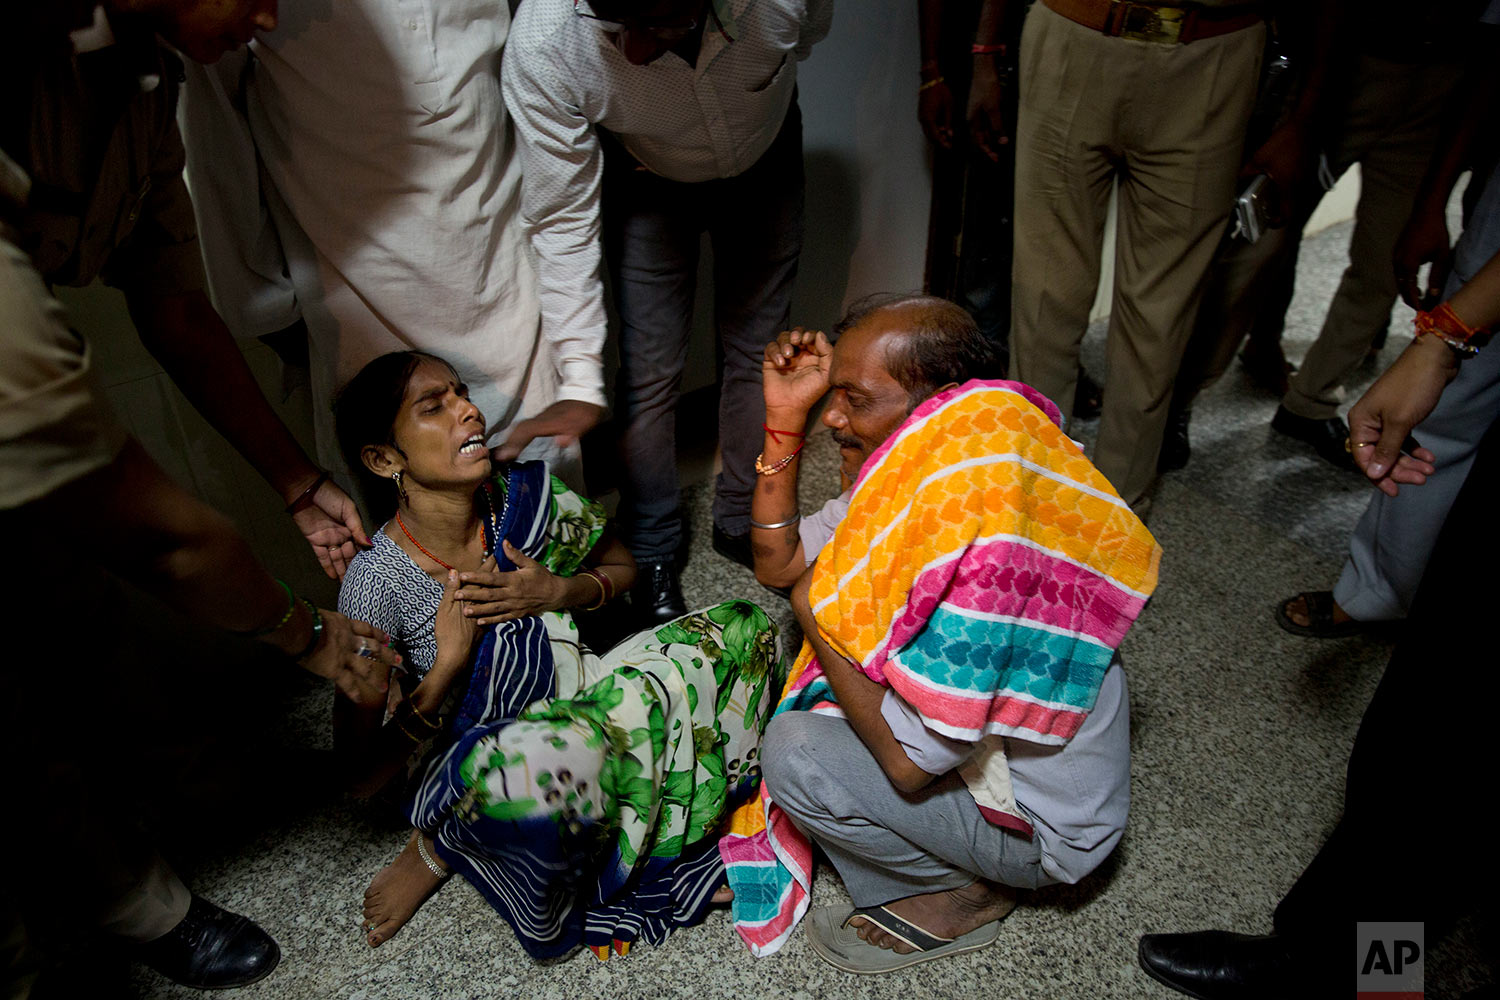 46-year-old Manthala weeps as she hears the news of the death of her one-month-old son Roshan at Baba Raghav Das Medical College Hospital in Gorakhpur, in the northern Indian state of Uttar Pradesh, Saturday, Aug. 12, 2017. Parents of at least 35 children who have died in the state-run hospital over the past three days have alleged that the fatalities were due to the lack of a sufficient oxygen supply in the children's ward. District Magistrate Rajiv Rautela said Saturday that the deaths of the children being treated for different ailments were due to natural causes. He denied that an insufficient oxygen supply led to their deaths. (AP Photo/Rajesh Kumar Singh)